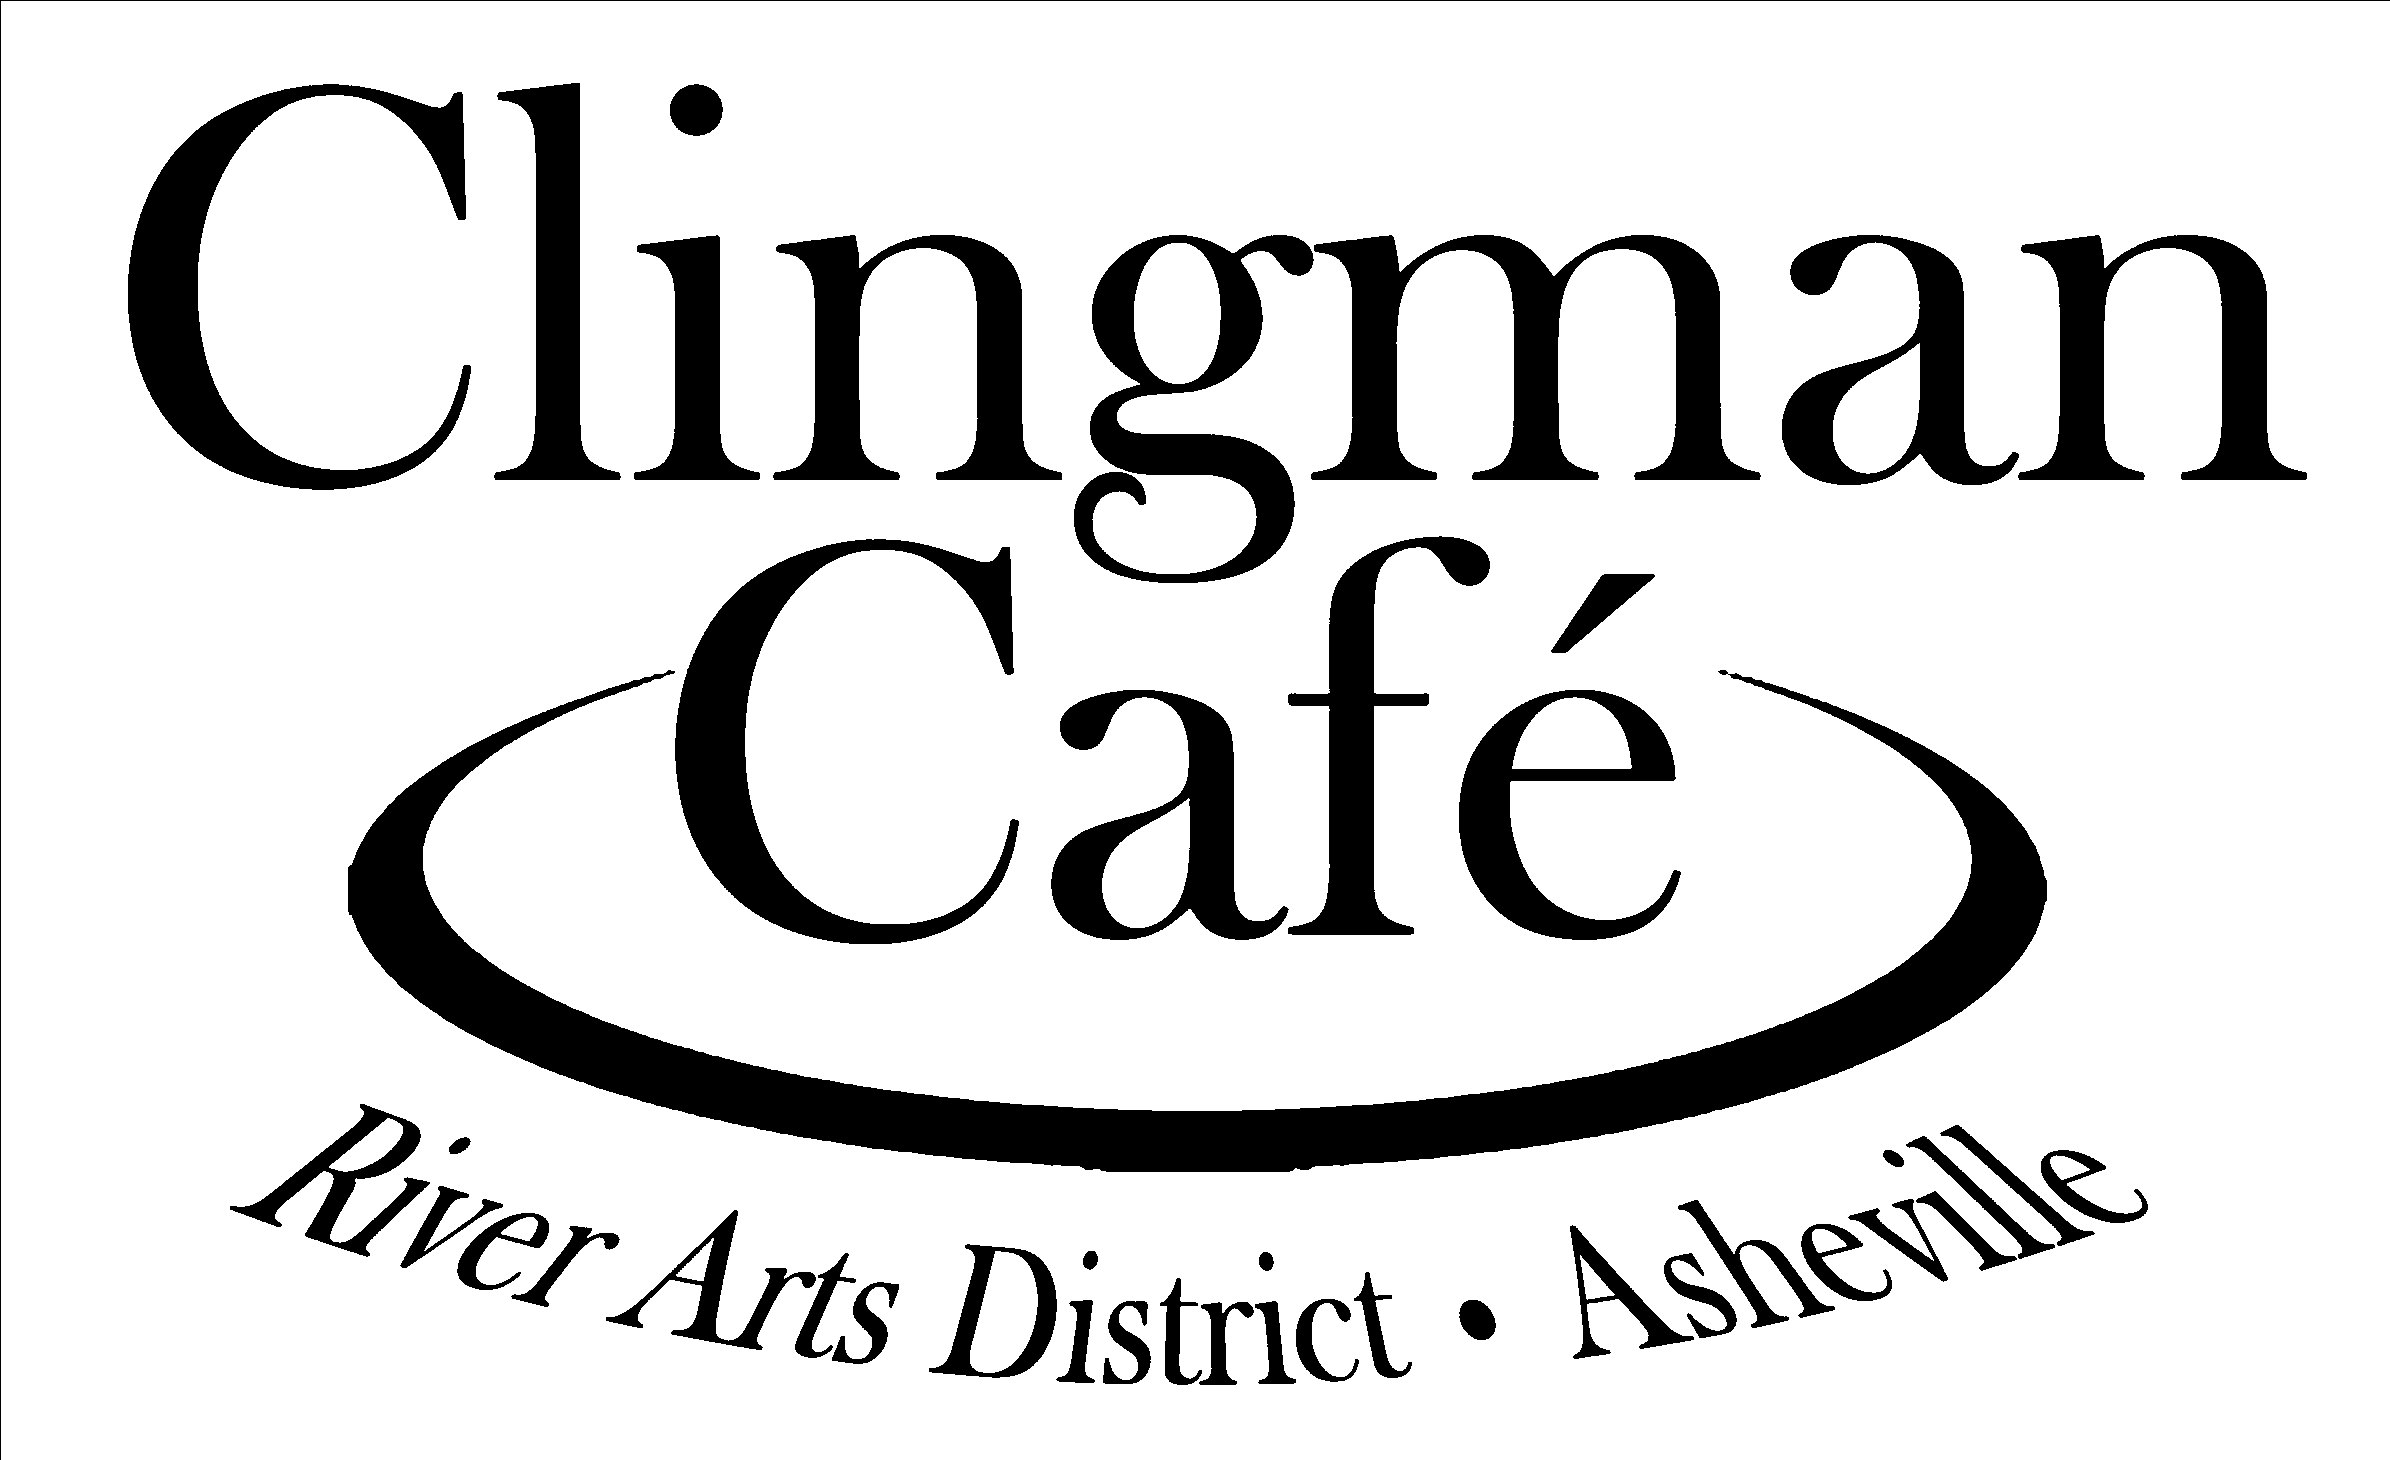 Clingman Cafe